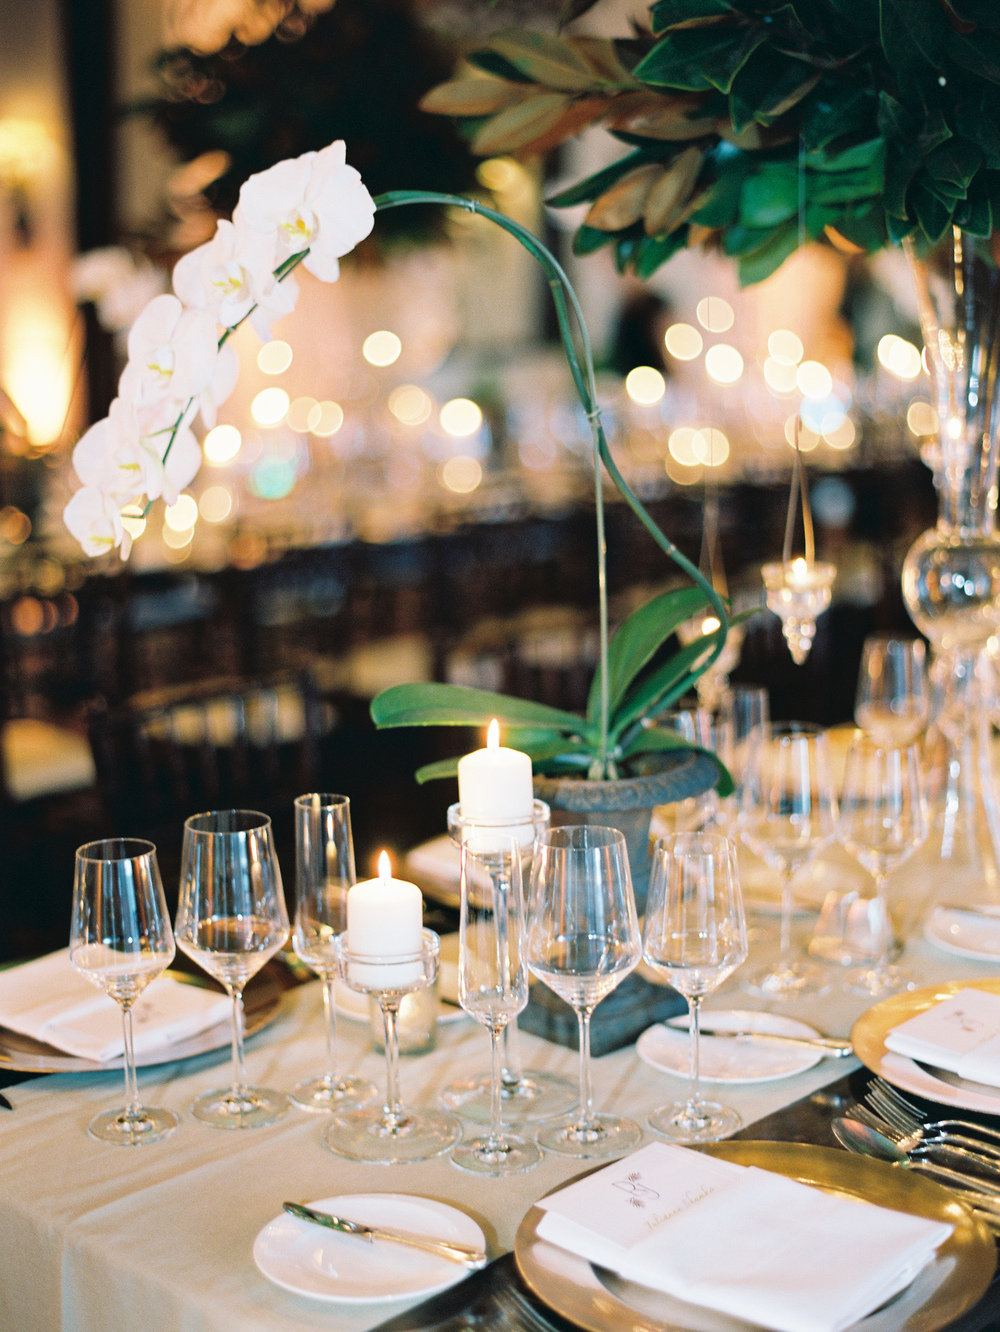 magnoliaeventdesign.com | Four Seasons Resort The Biltmore Santa Barbara Wedding Photographed by Linda Chaja | Magnolia Event Design